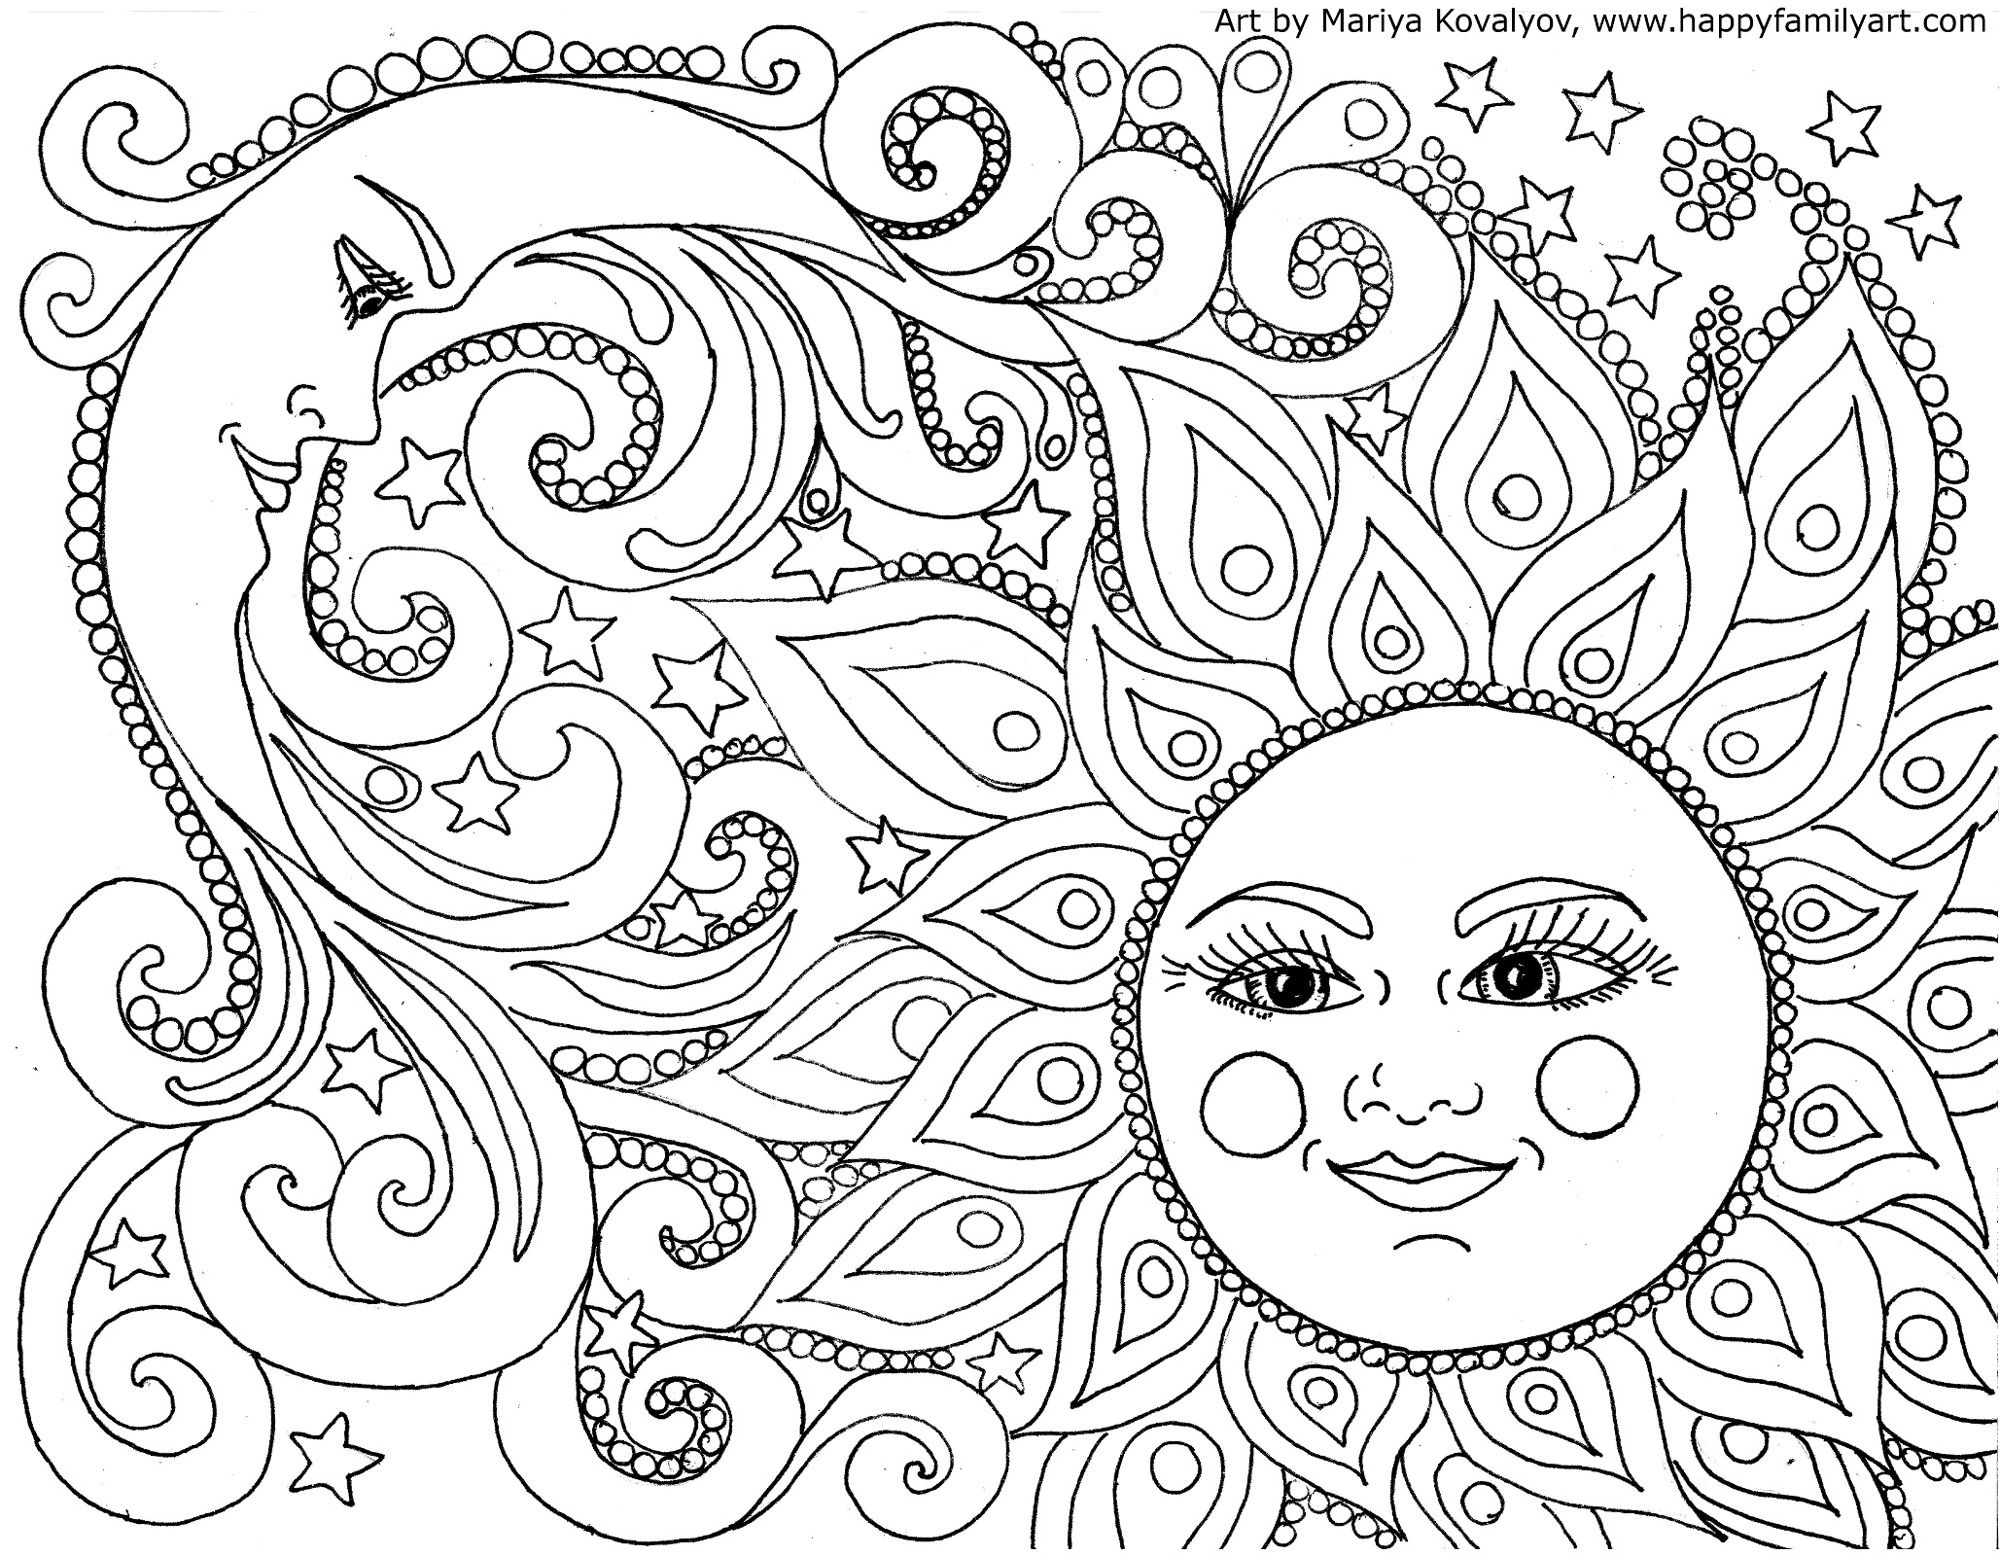 free adult colouring page free adult coloring page - Adult Color Pages